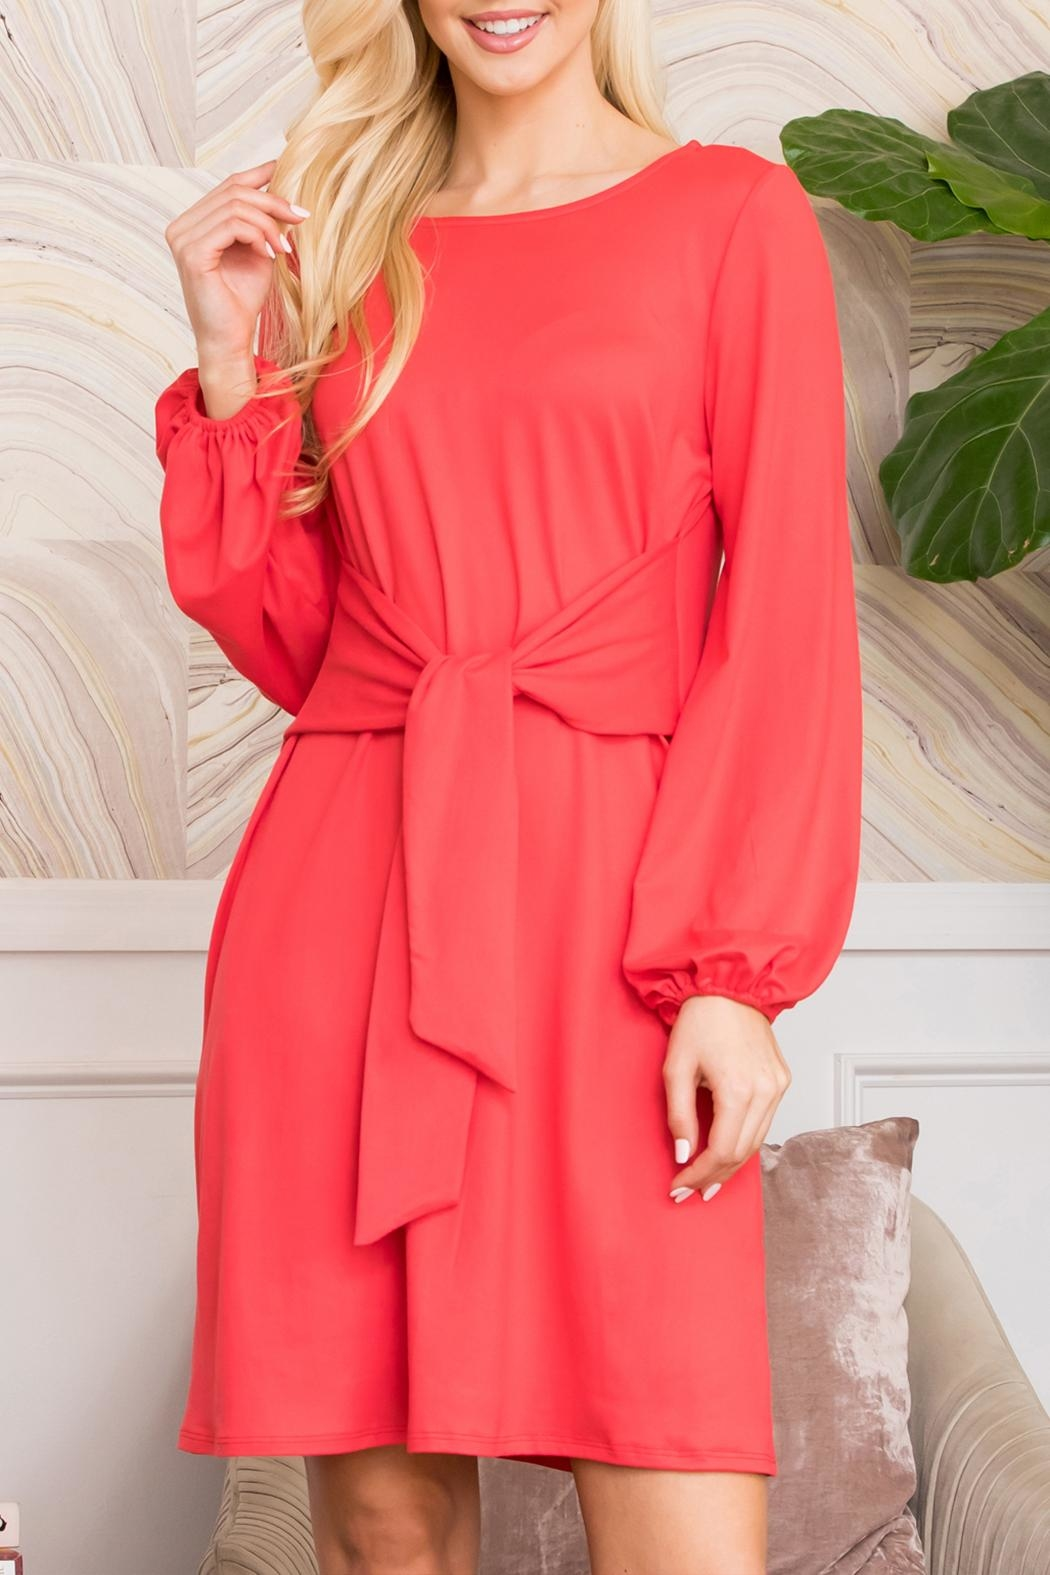 Riah Fashion Spring Puff Sleeve Tie Dress - Front Cropped Image